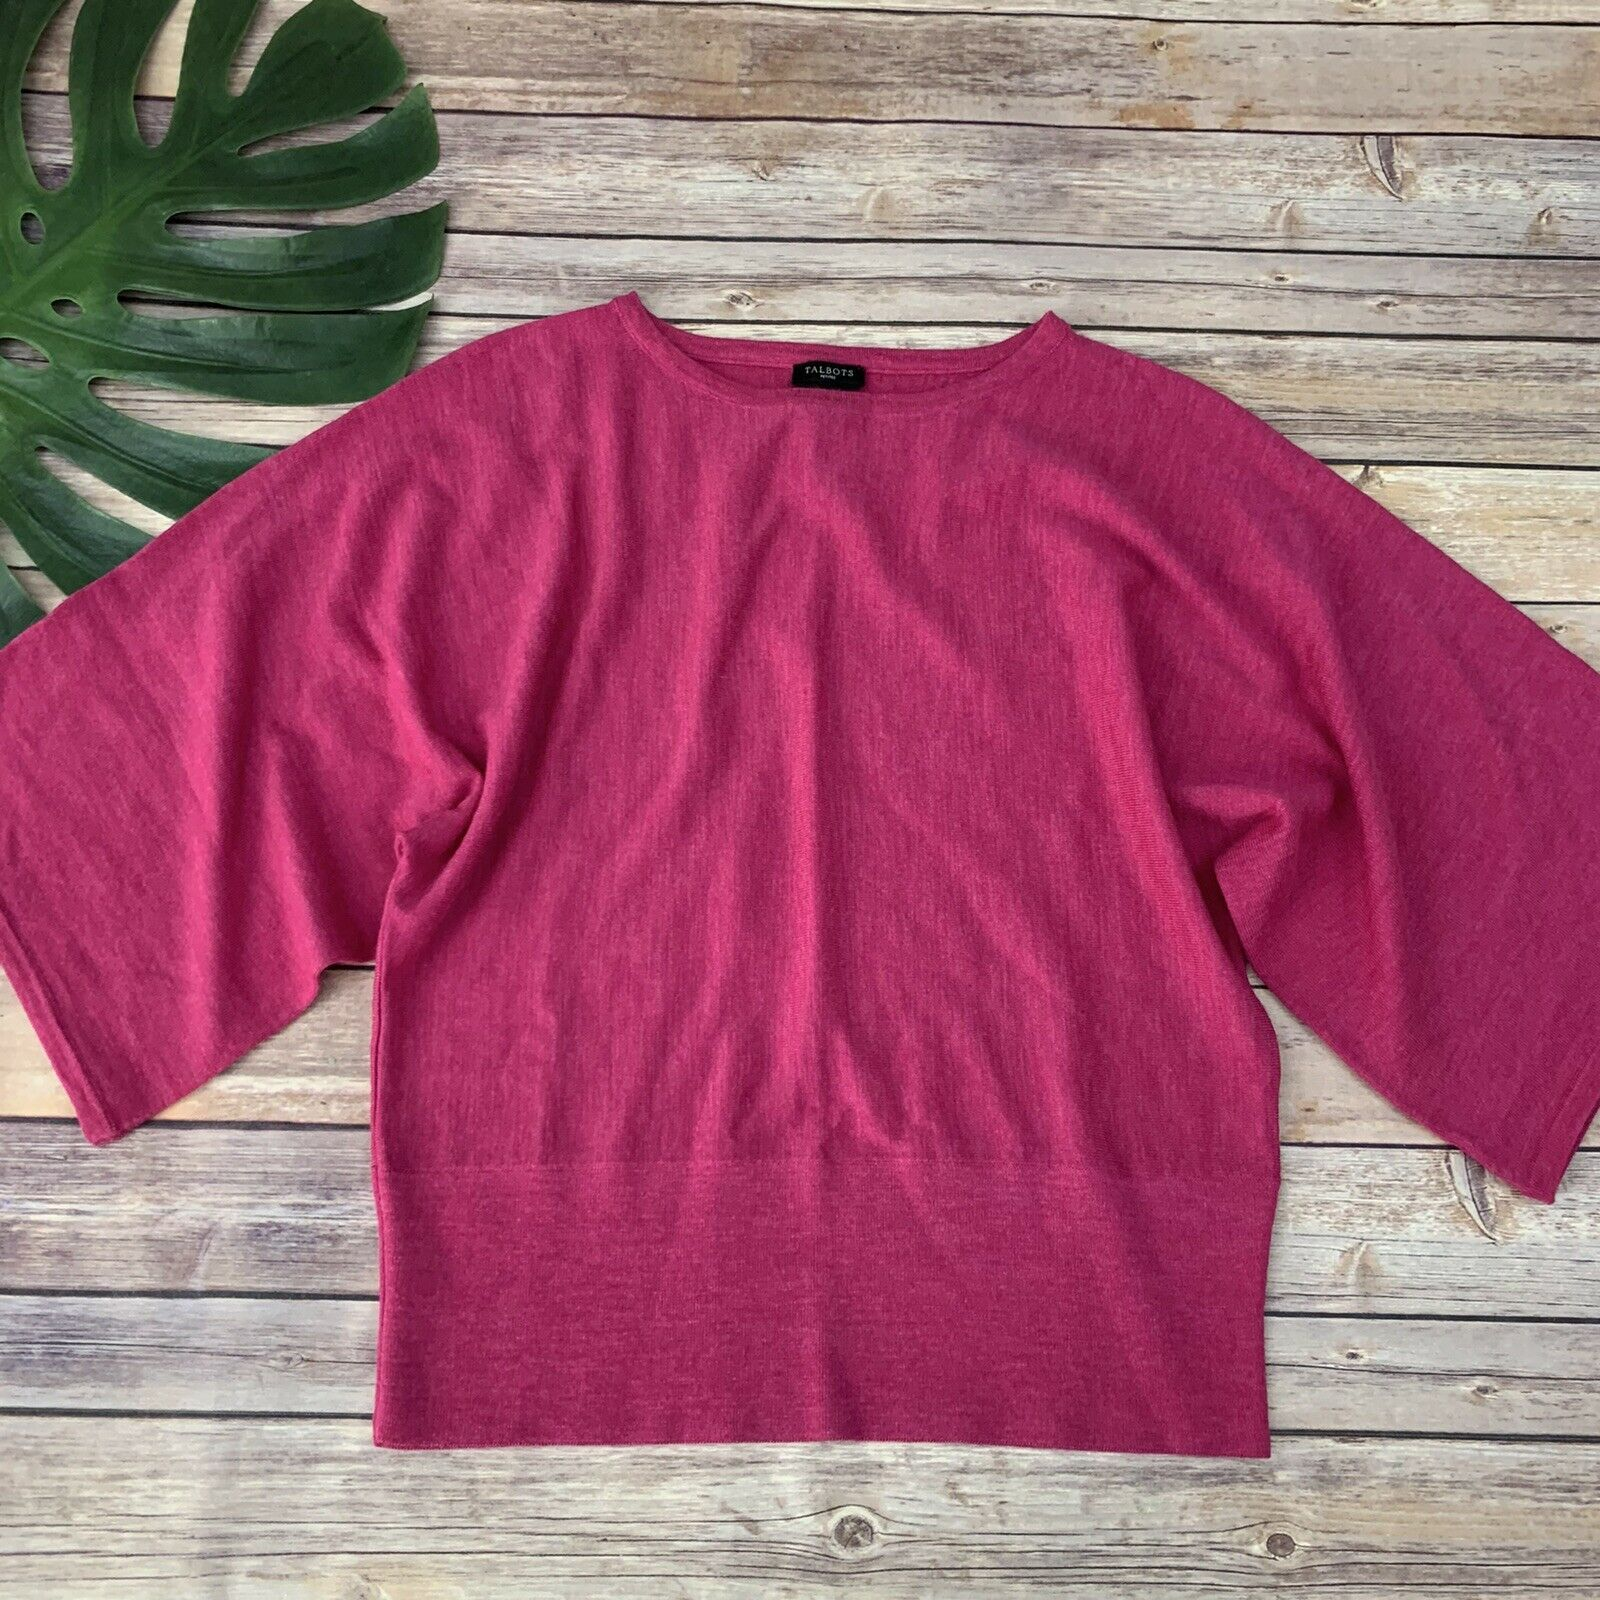 Primary image for Talbots Batwing Merino Wool Sweater Size M Petite Bright Pink 3/4 Sleeve Solid